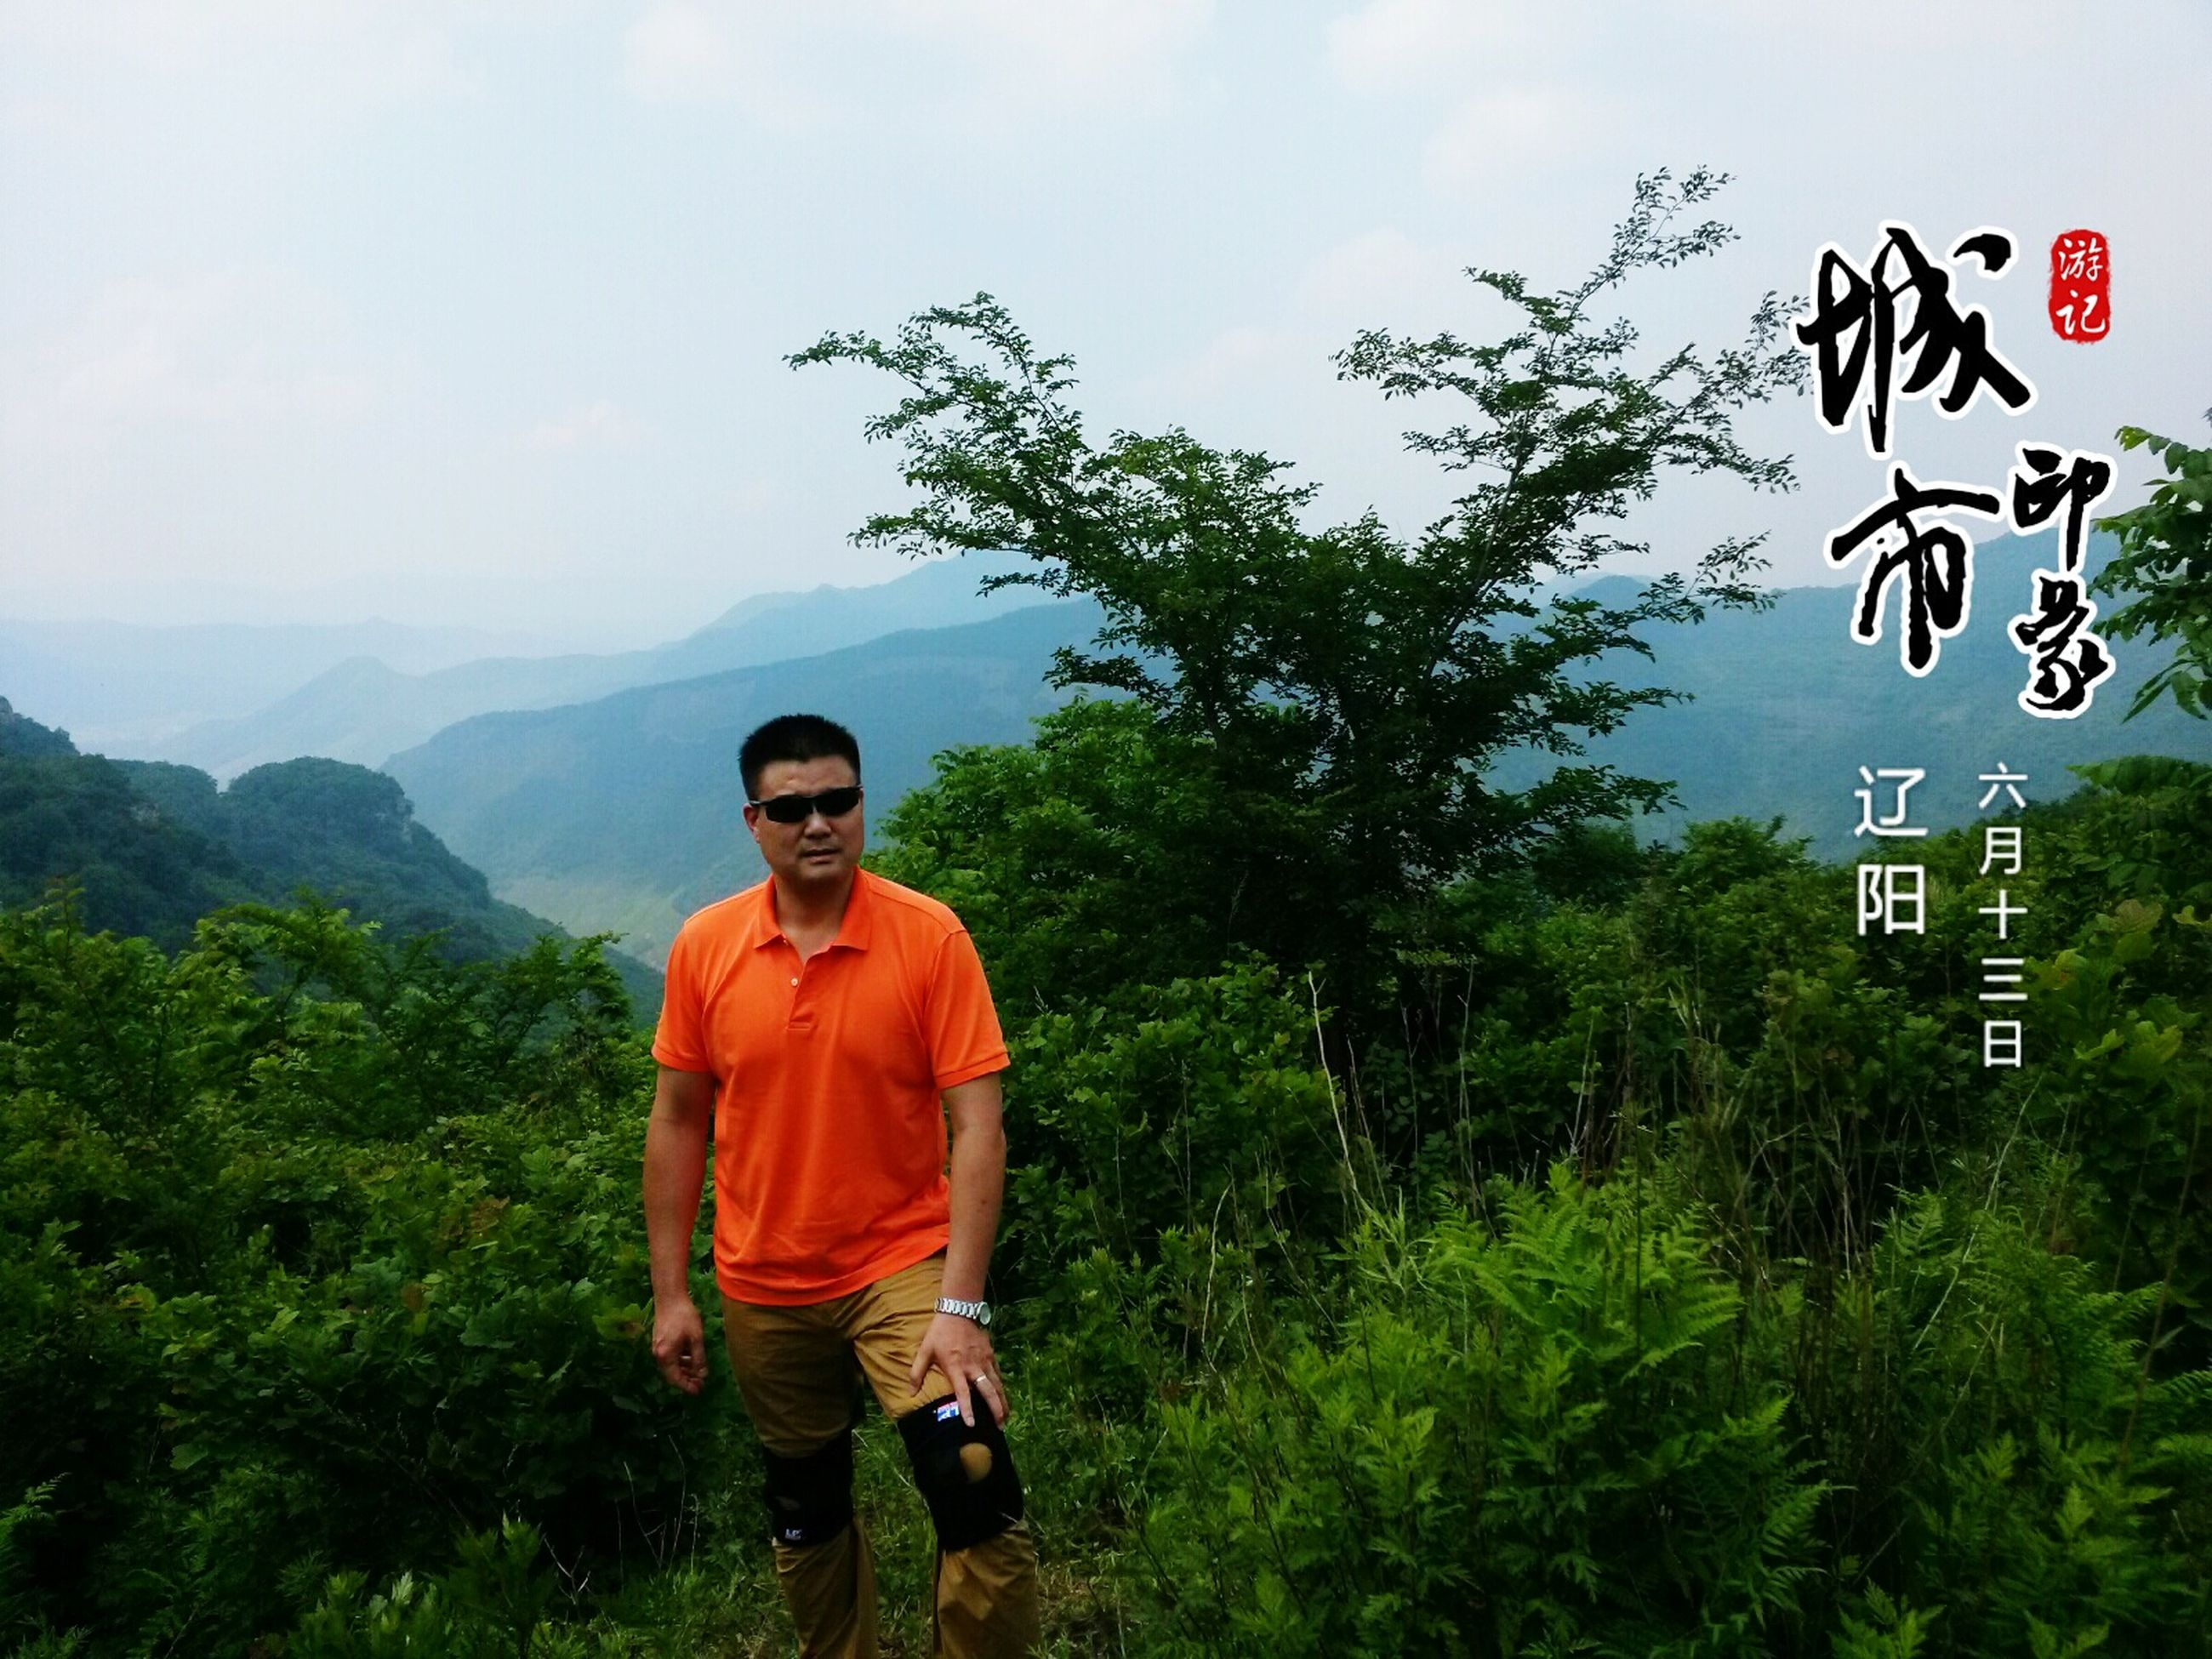 lifestyles, tree, leisure activity, mountain, casual clothing, standing, men, sky, full length, young men, photographing, young adult, three quarter length, photography themes, nature, rear view, growth, backpack